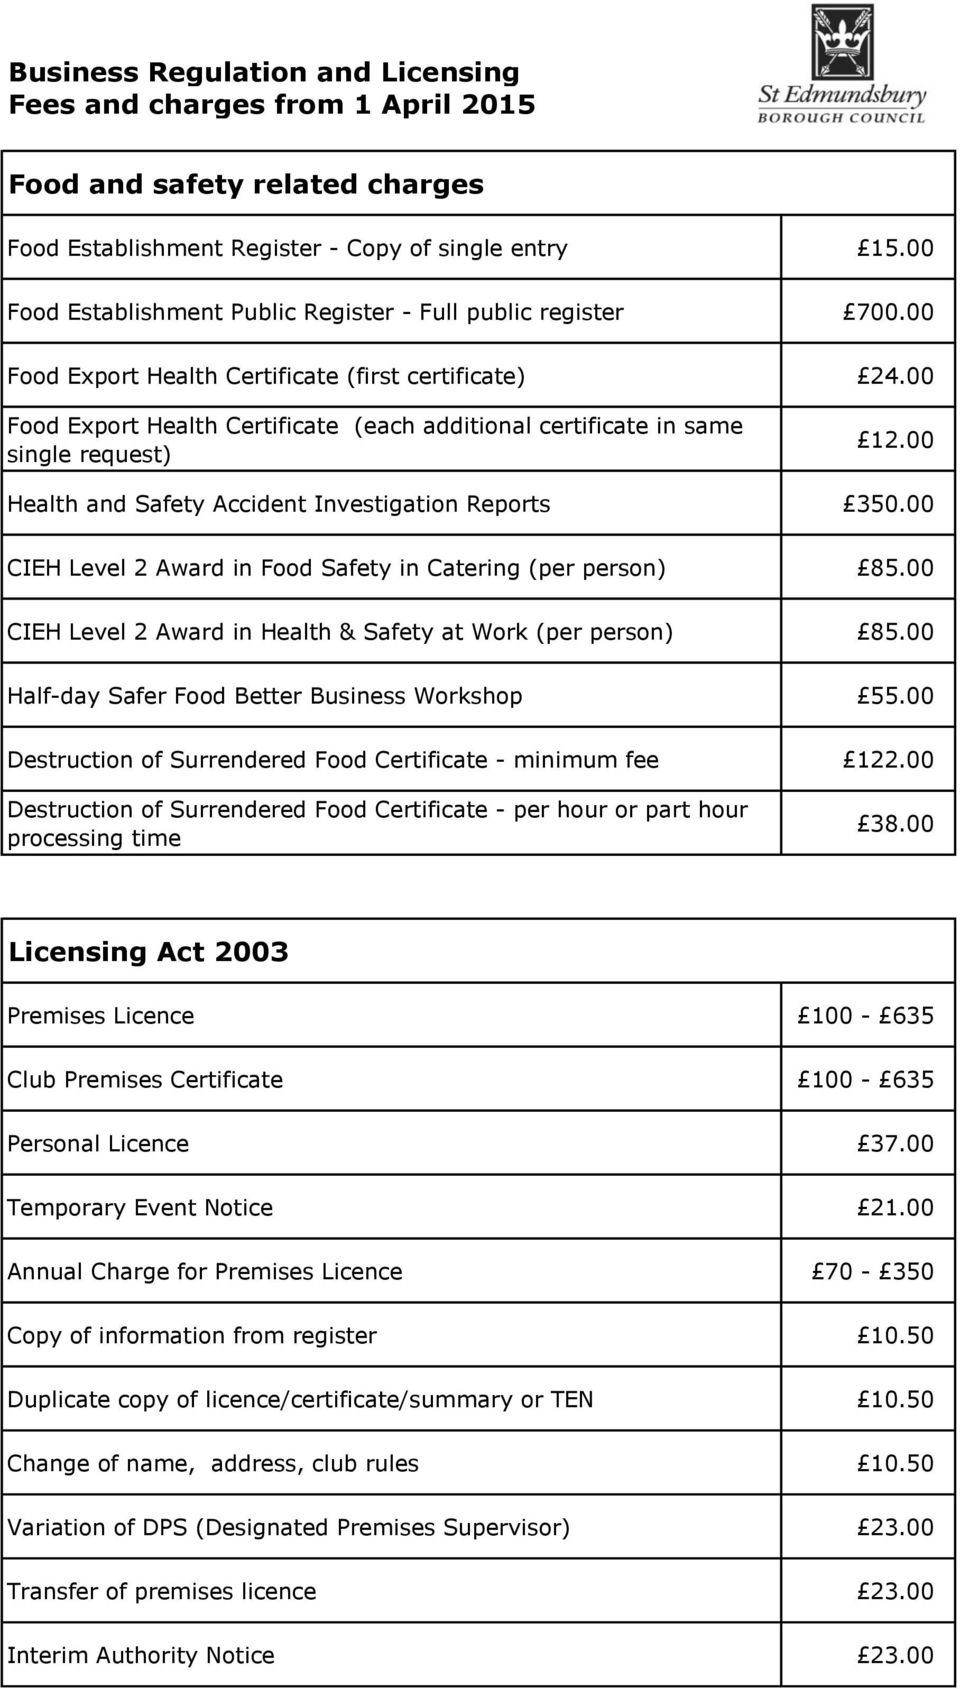 00 Food Export Health Certificate (each additional certificate in same single request) 12.00 Health and Safety Accident Investigation Reports 350.